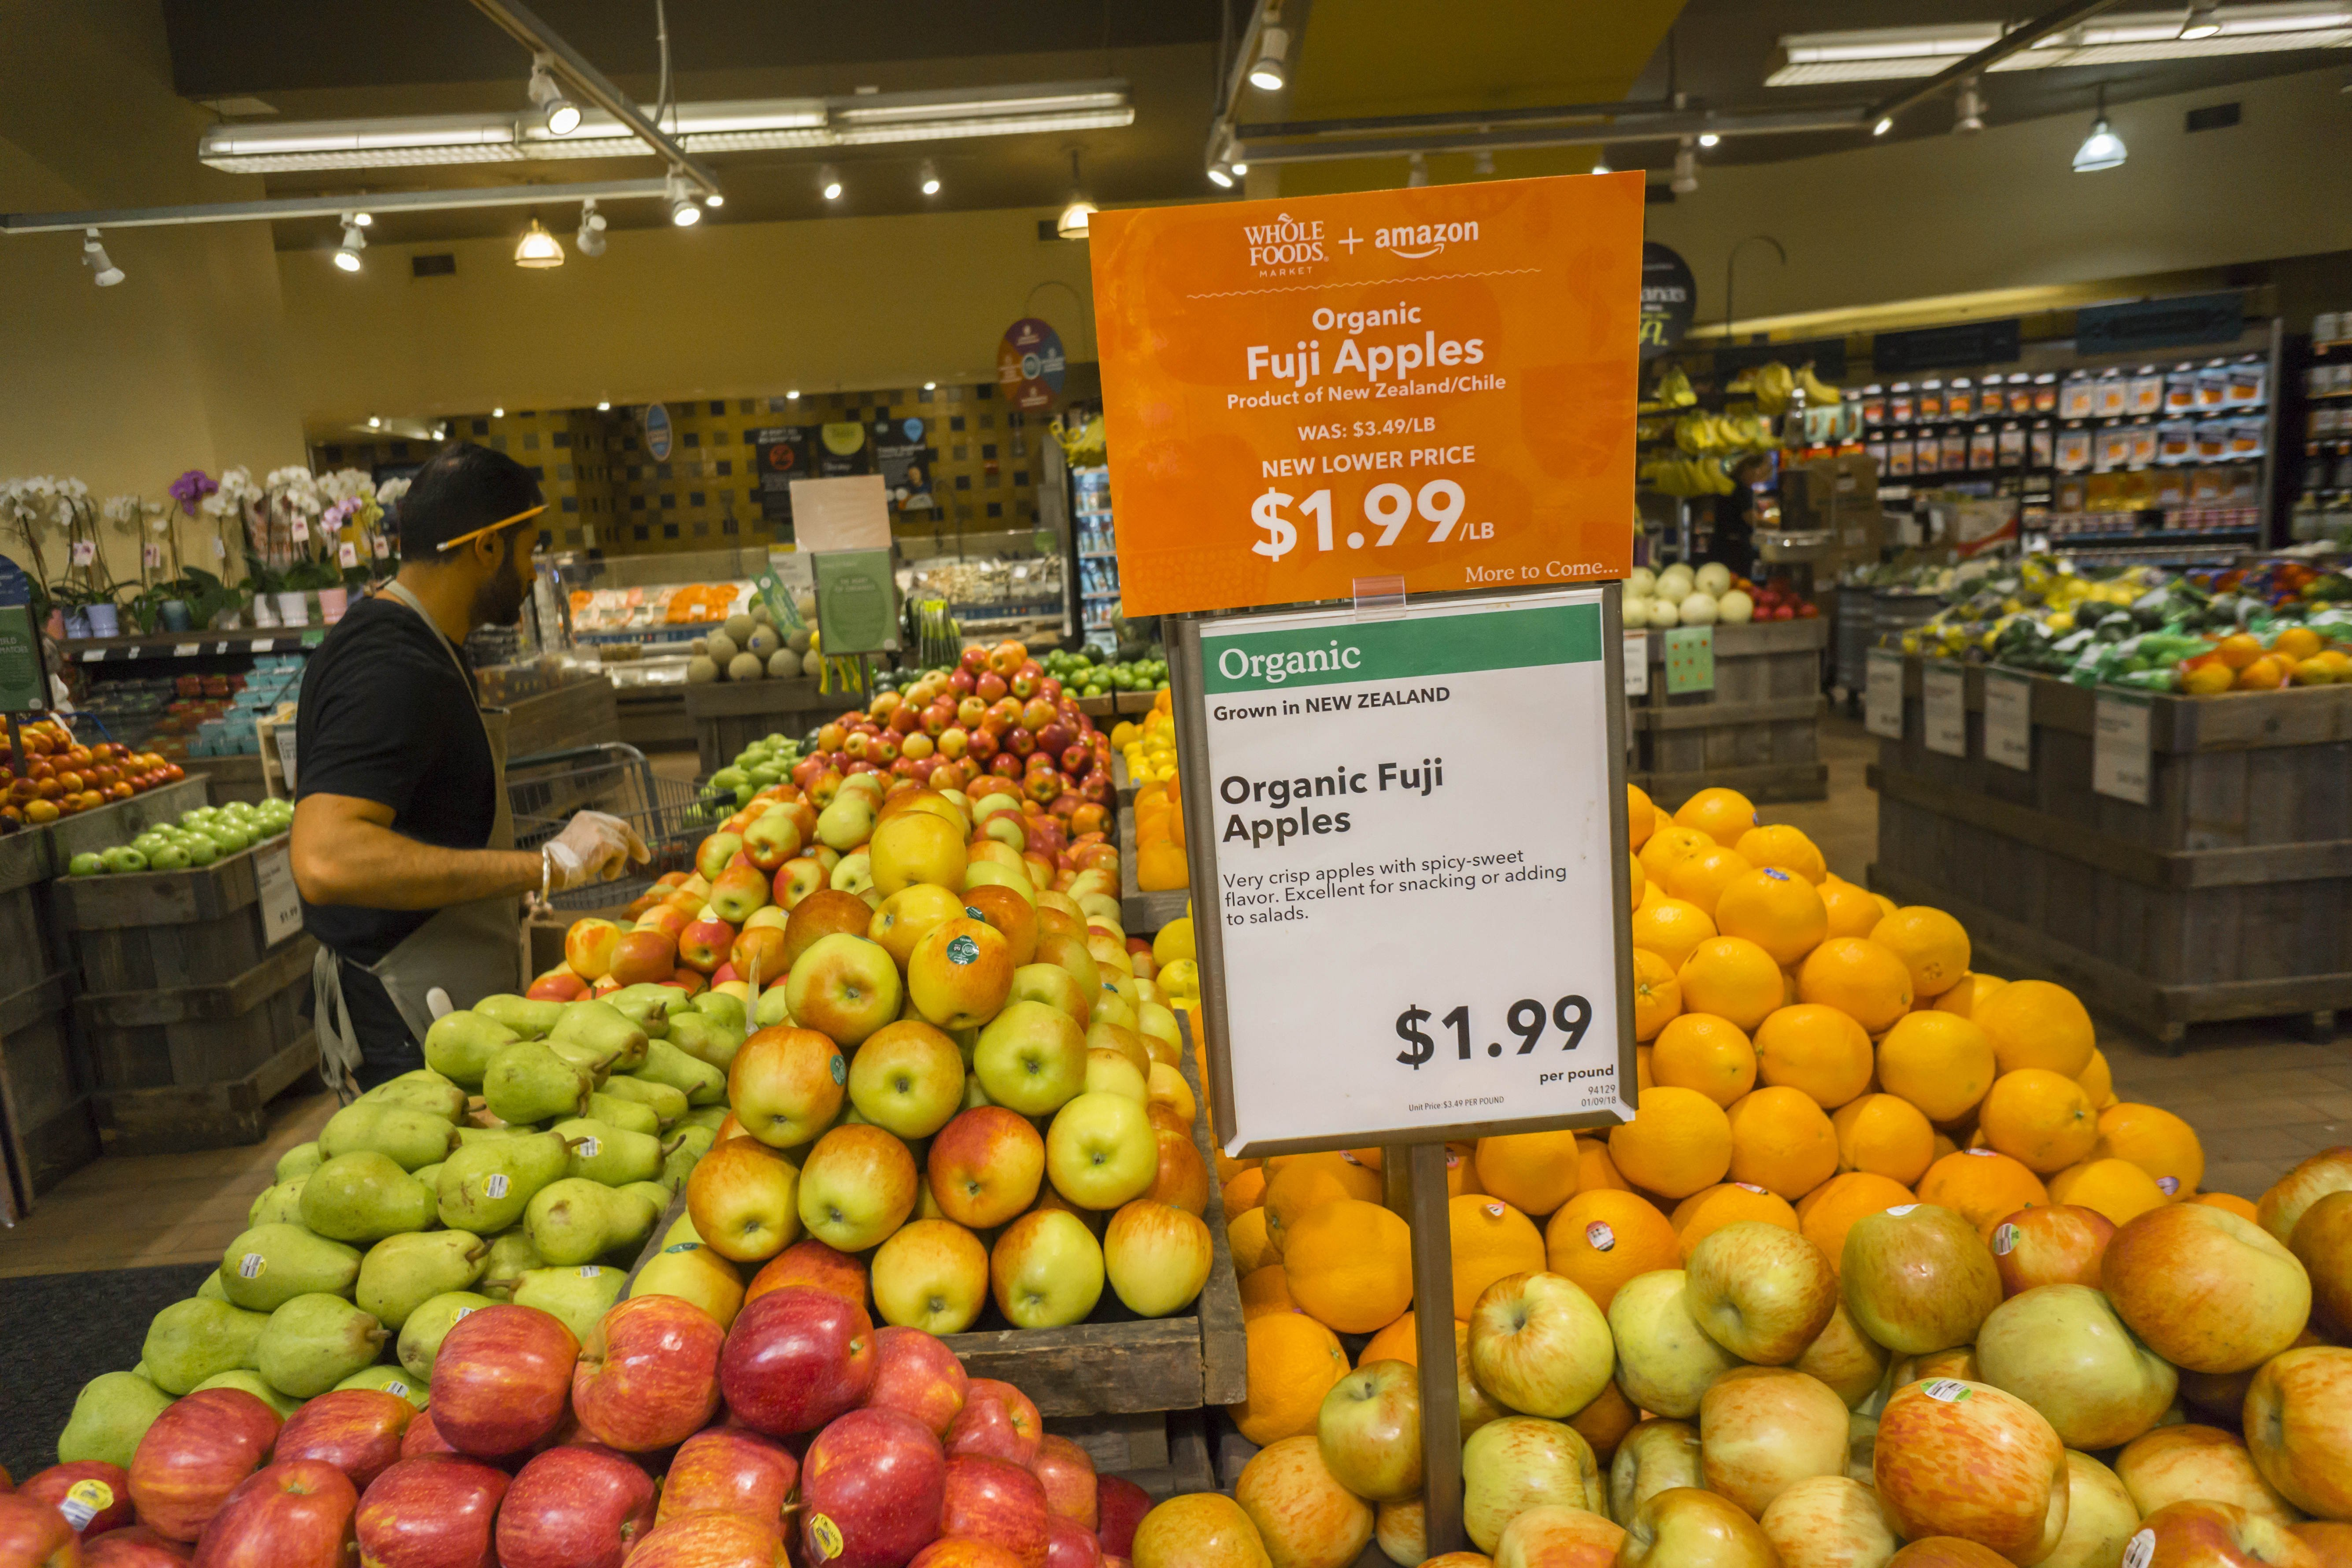 Amazon Whole Foods More Shoppers Head To Whole Foods After Amazon Merger Wsj